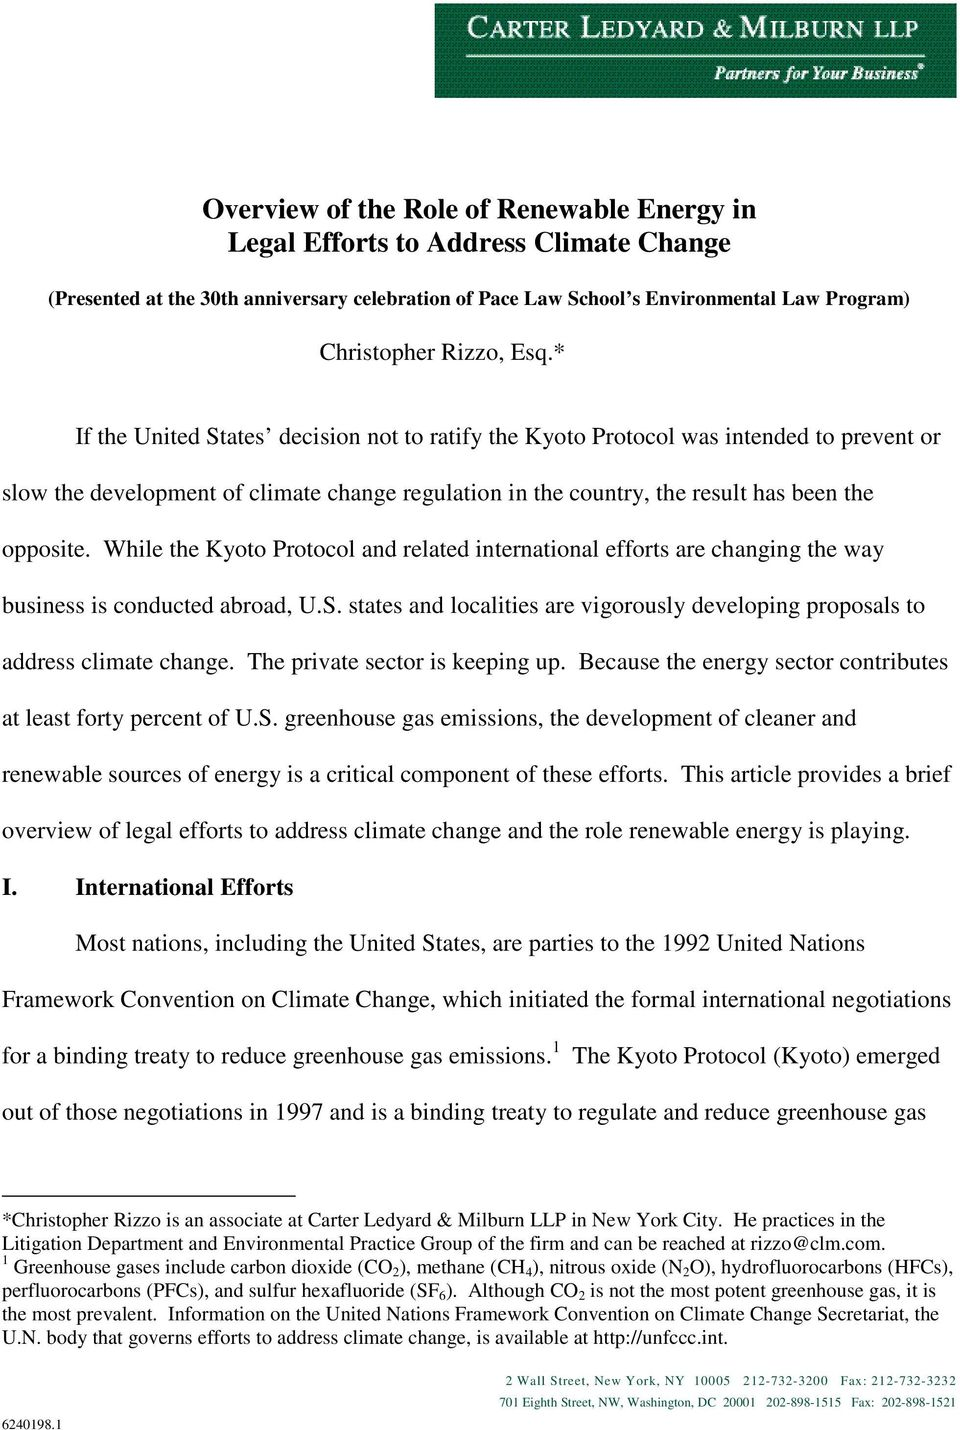 While the Kyoto Protocol and related international efforts are changing the way business is conducted abroad, U.S. states and localities are vigorously developing proposals to address climate change.